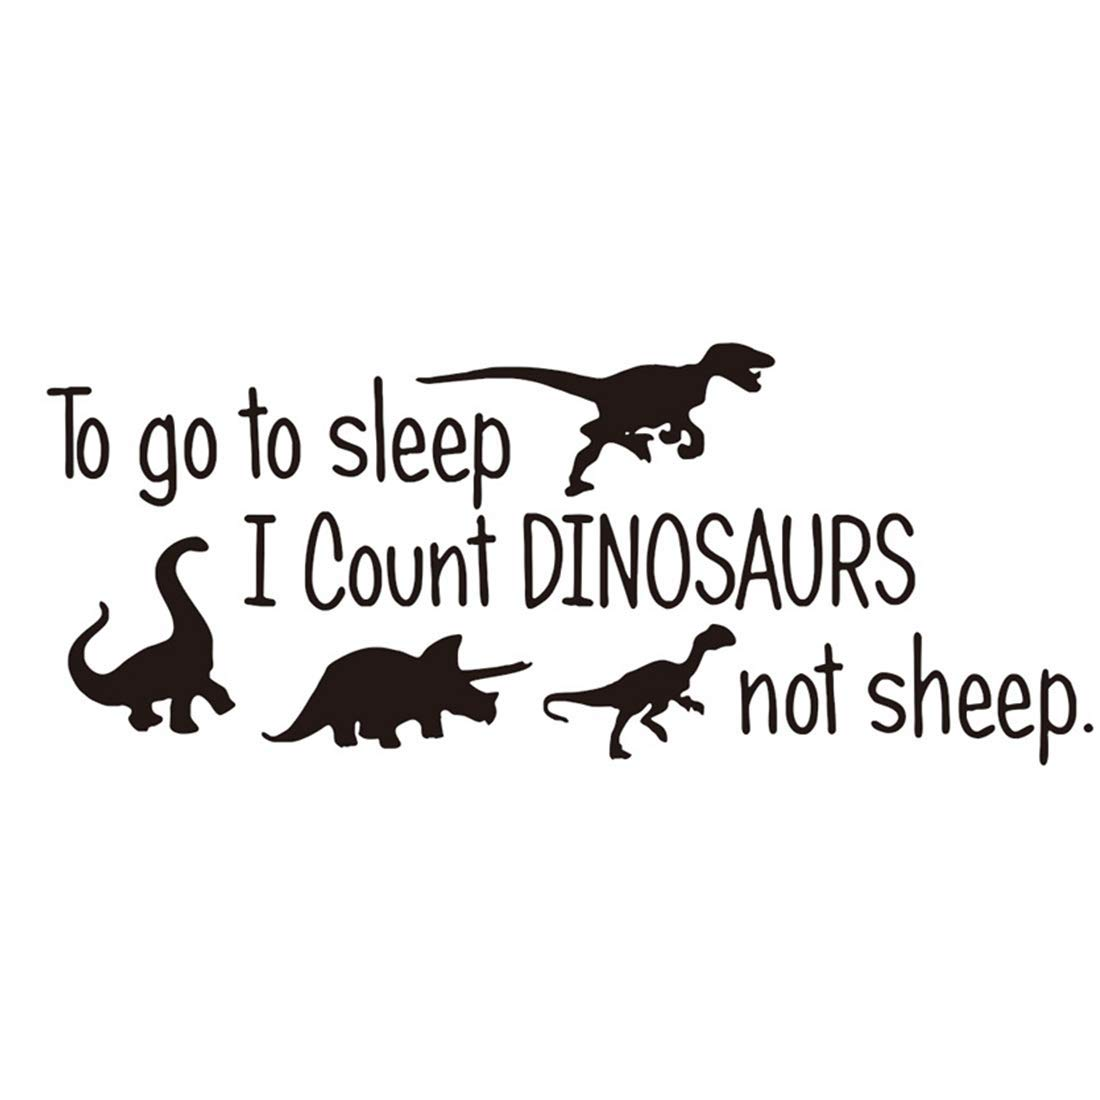 to Go to Sleep I Count Dinosaur Not Sheep Vinyl Wall Decals Cute Dinosaurs Bedroom Wall Sticker Wall Decals Kids Room Nursery Room Removable Peel & Stick Cartoon Wall Art Home Decor Stickers Poster